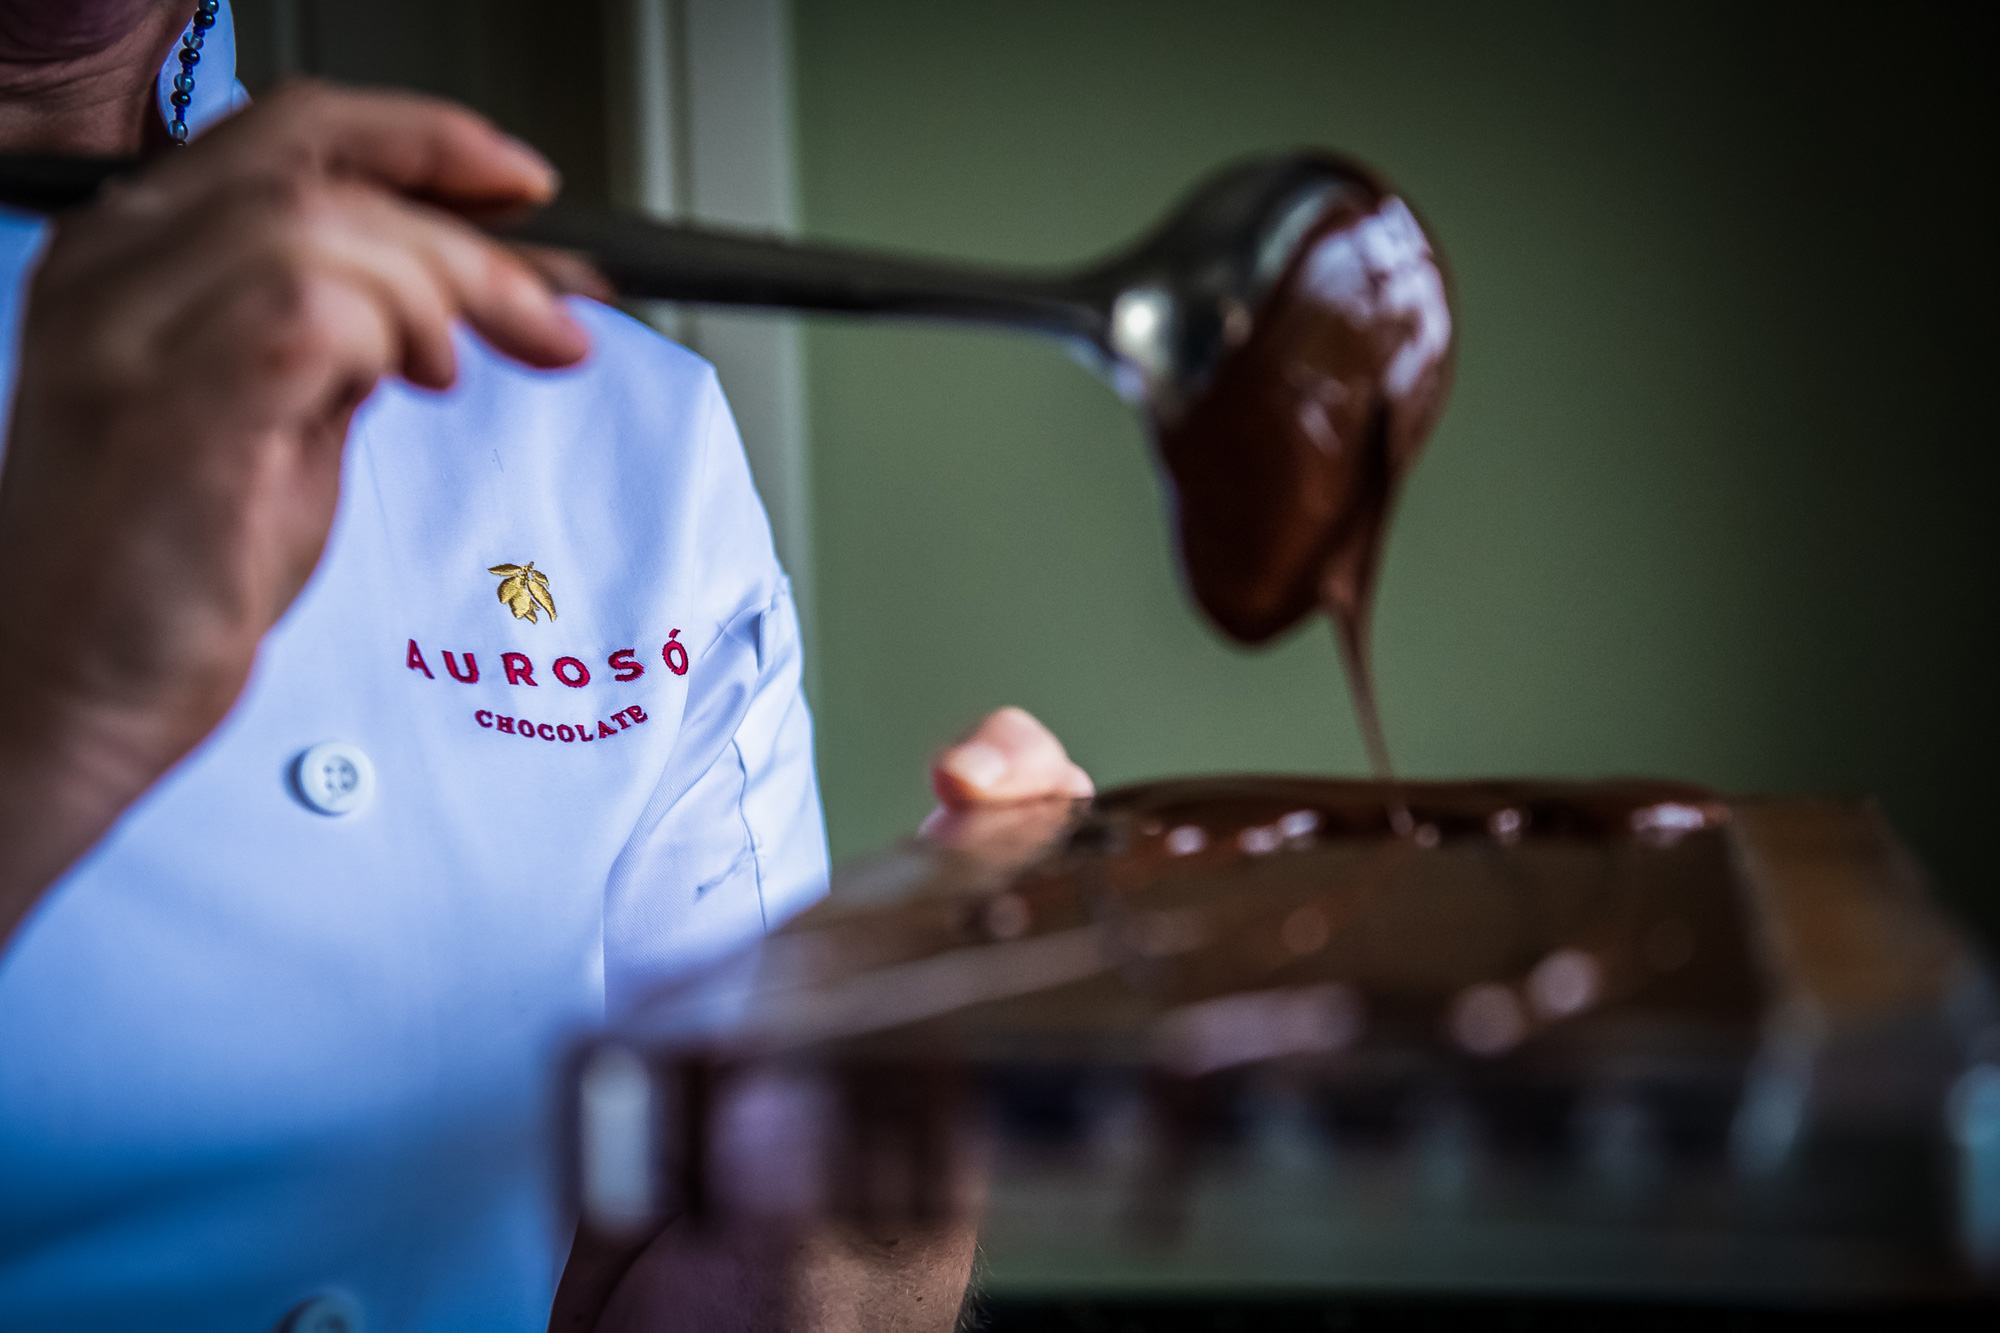 Making Auroso Chocolate